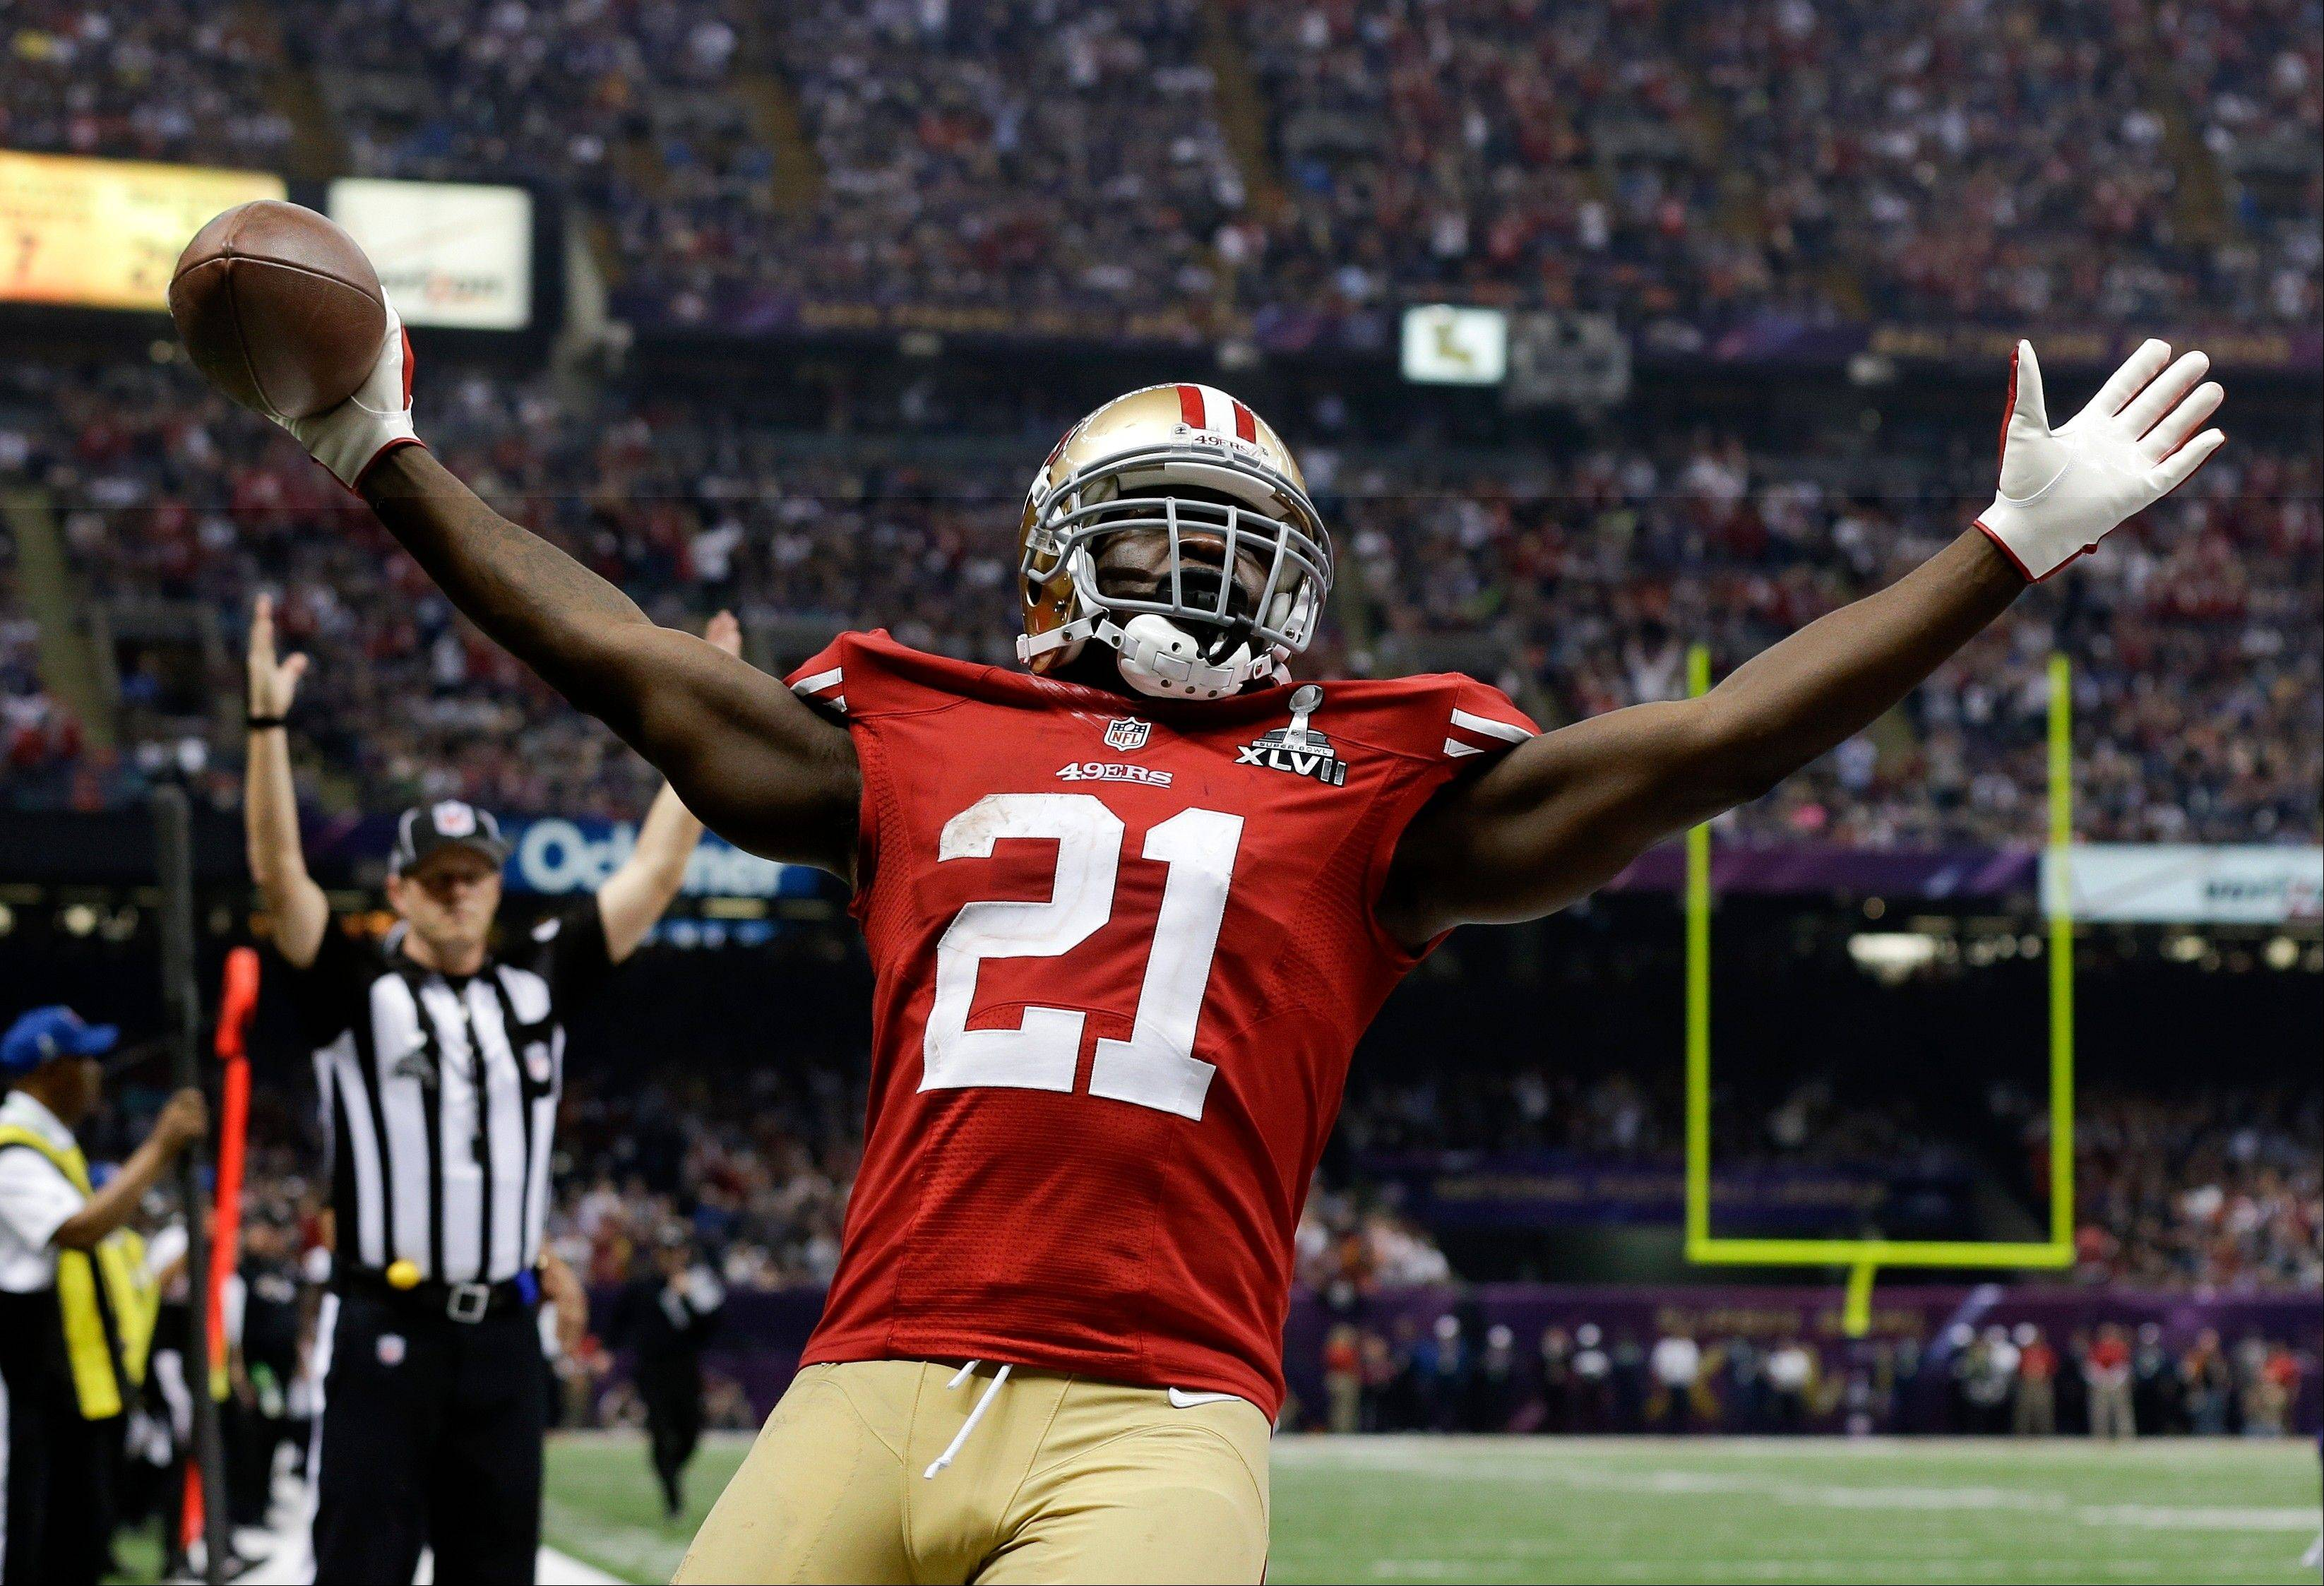 San Francisco 49ers running back Frank Gore celebrates his touchdown against the Baltimore Ravens during the second half.